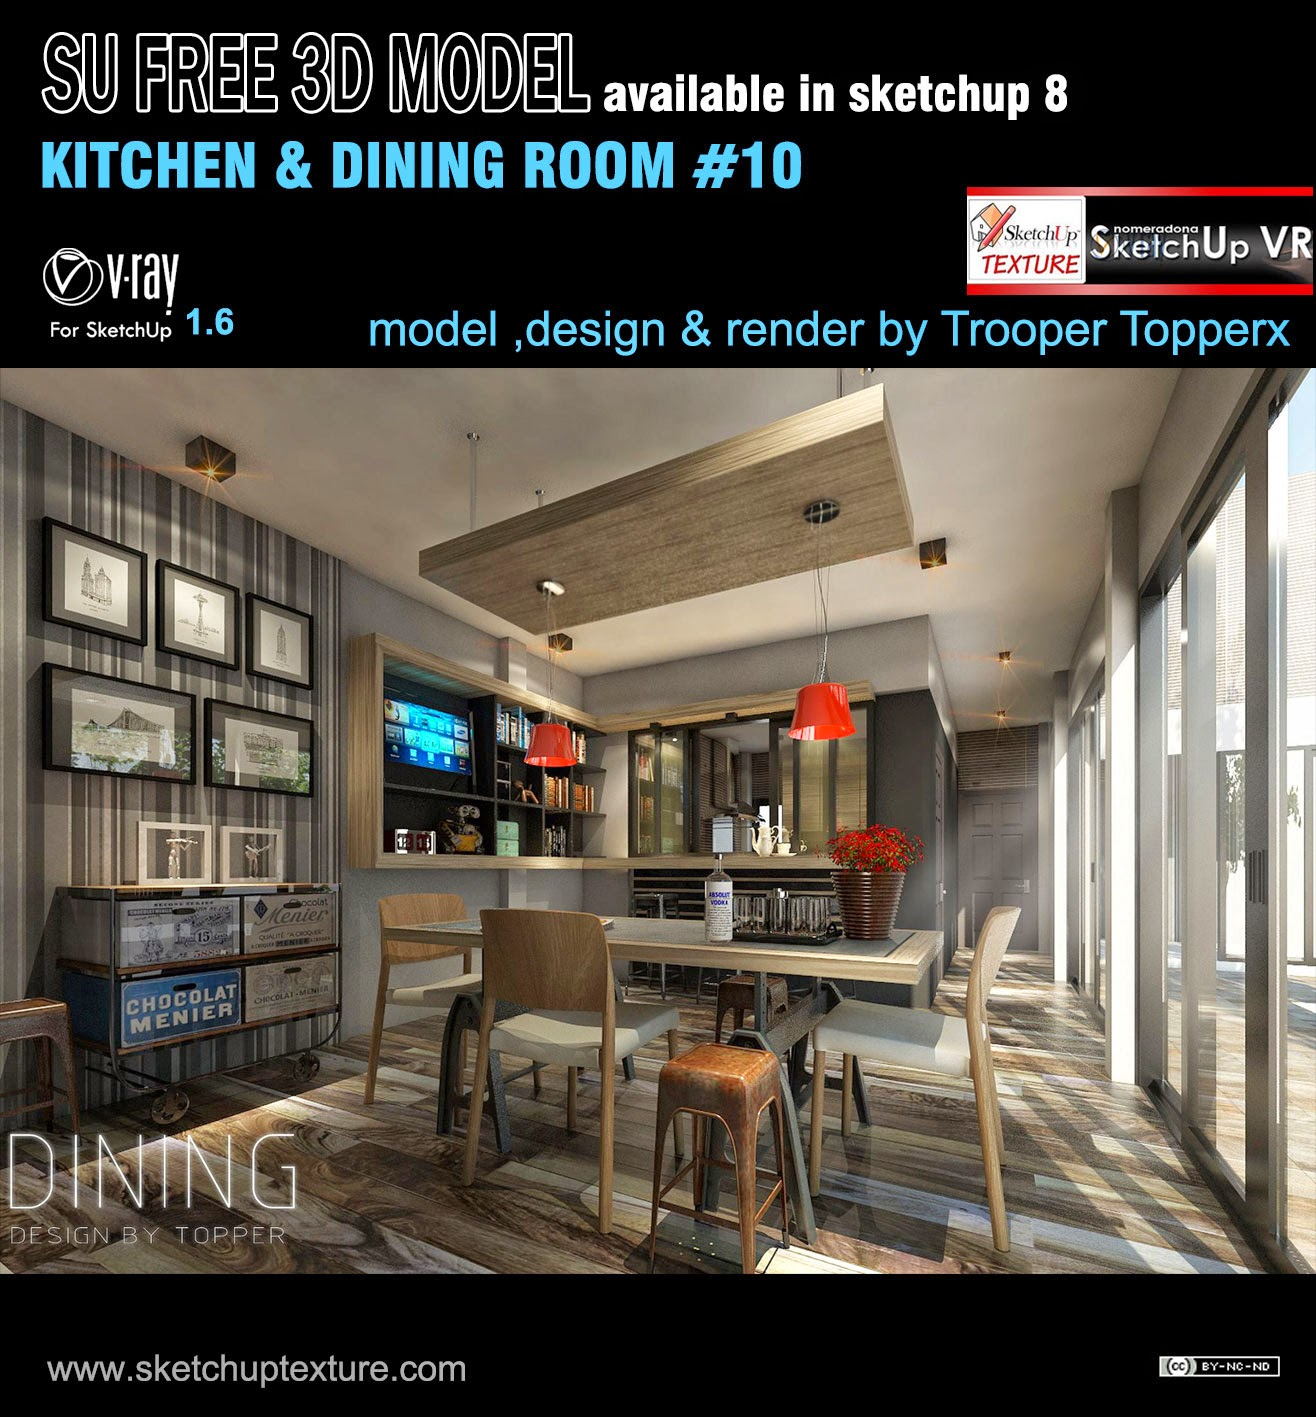 Best free sketchup 3d model kitchen dining room 10 for Kitchen room model